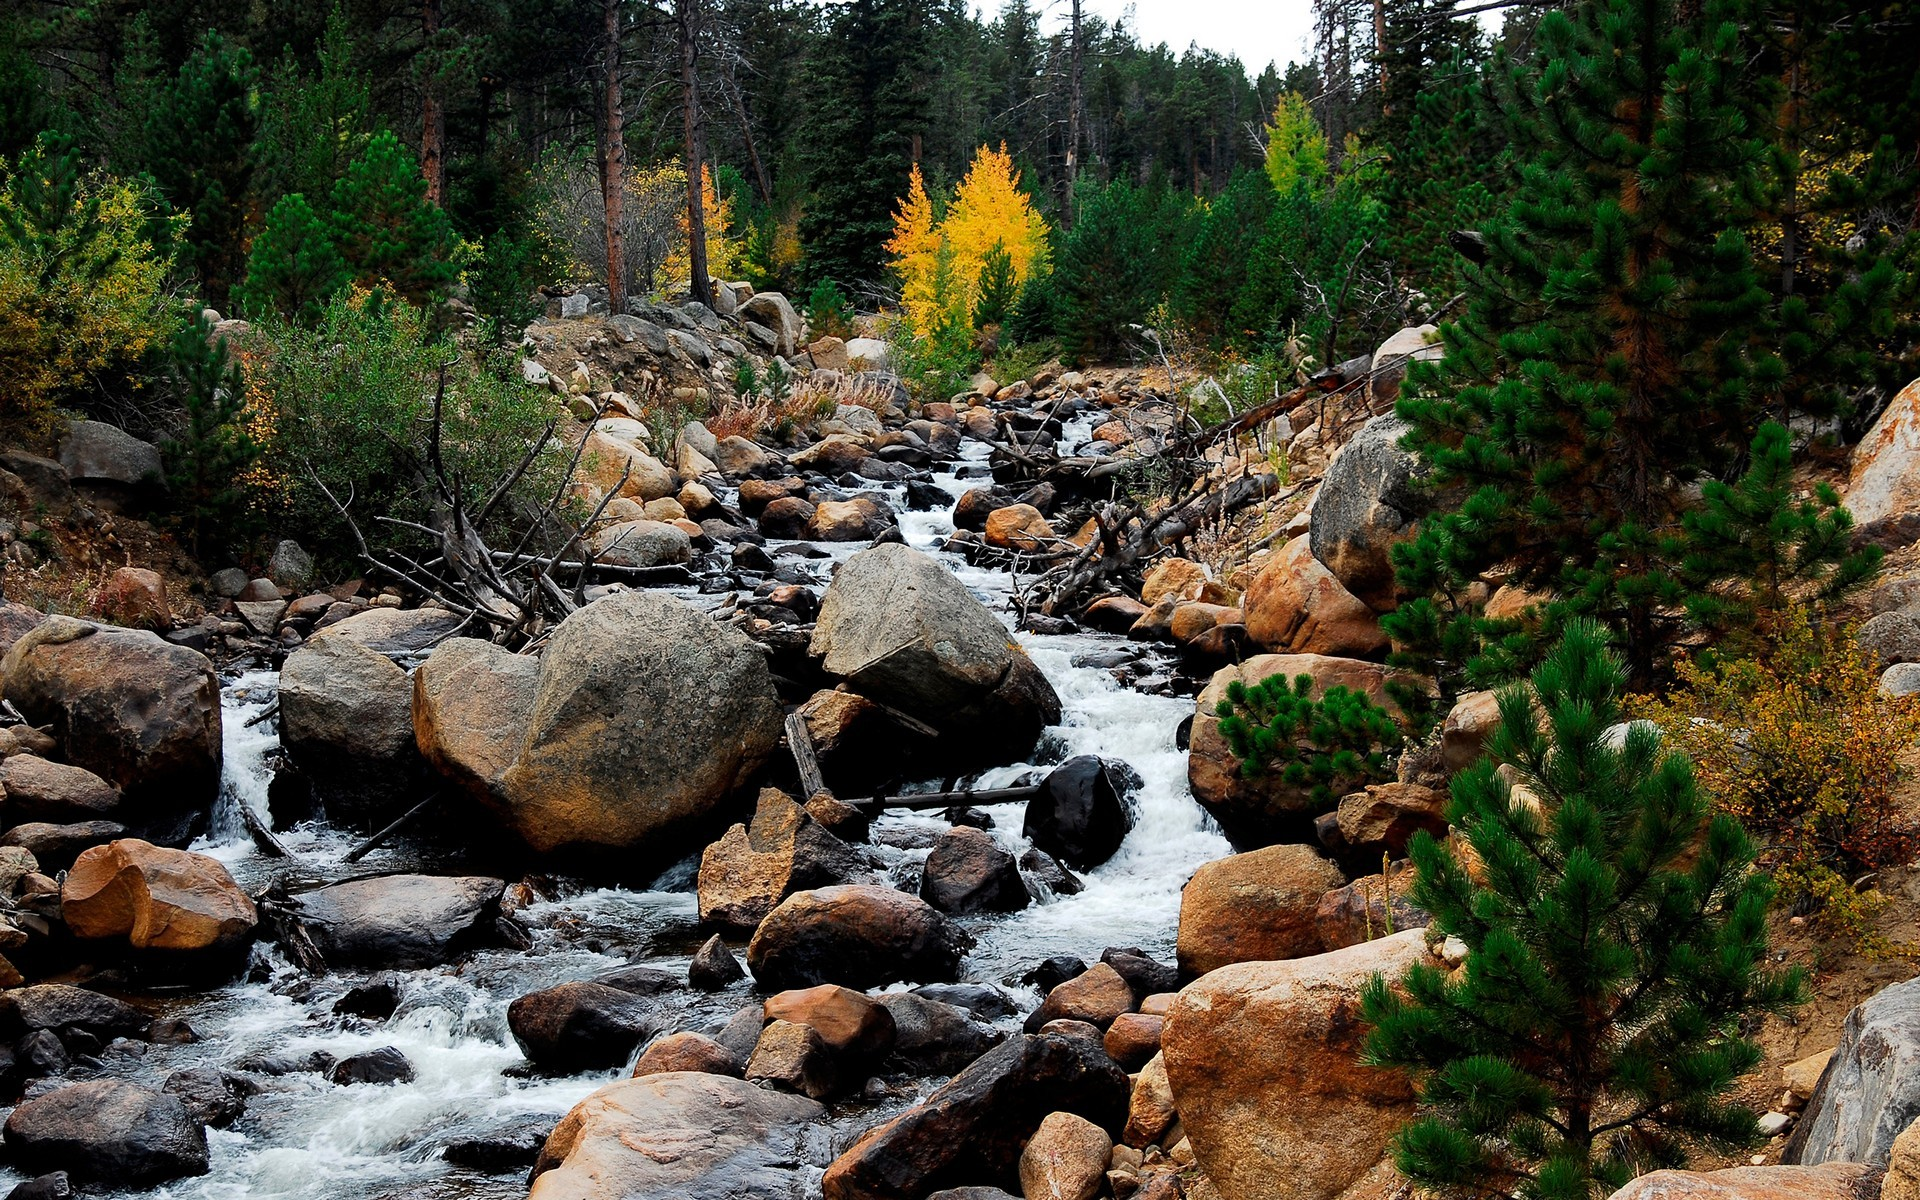 Description: Rocky Mountain River Wallpaper is a hi res Wallpaper for